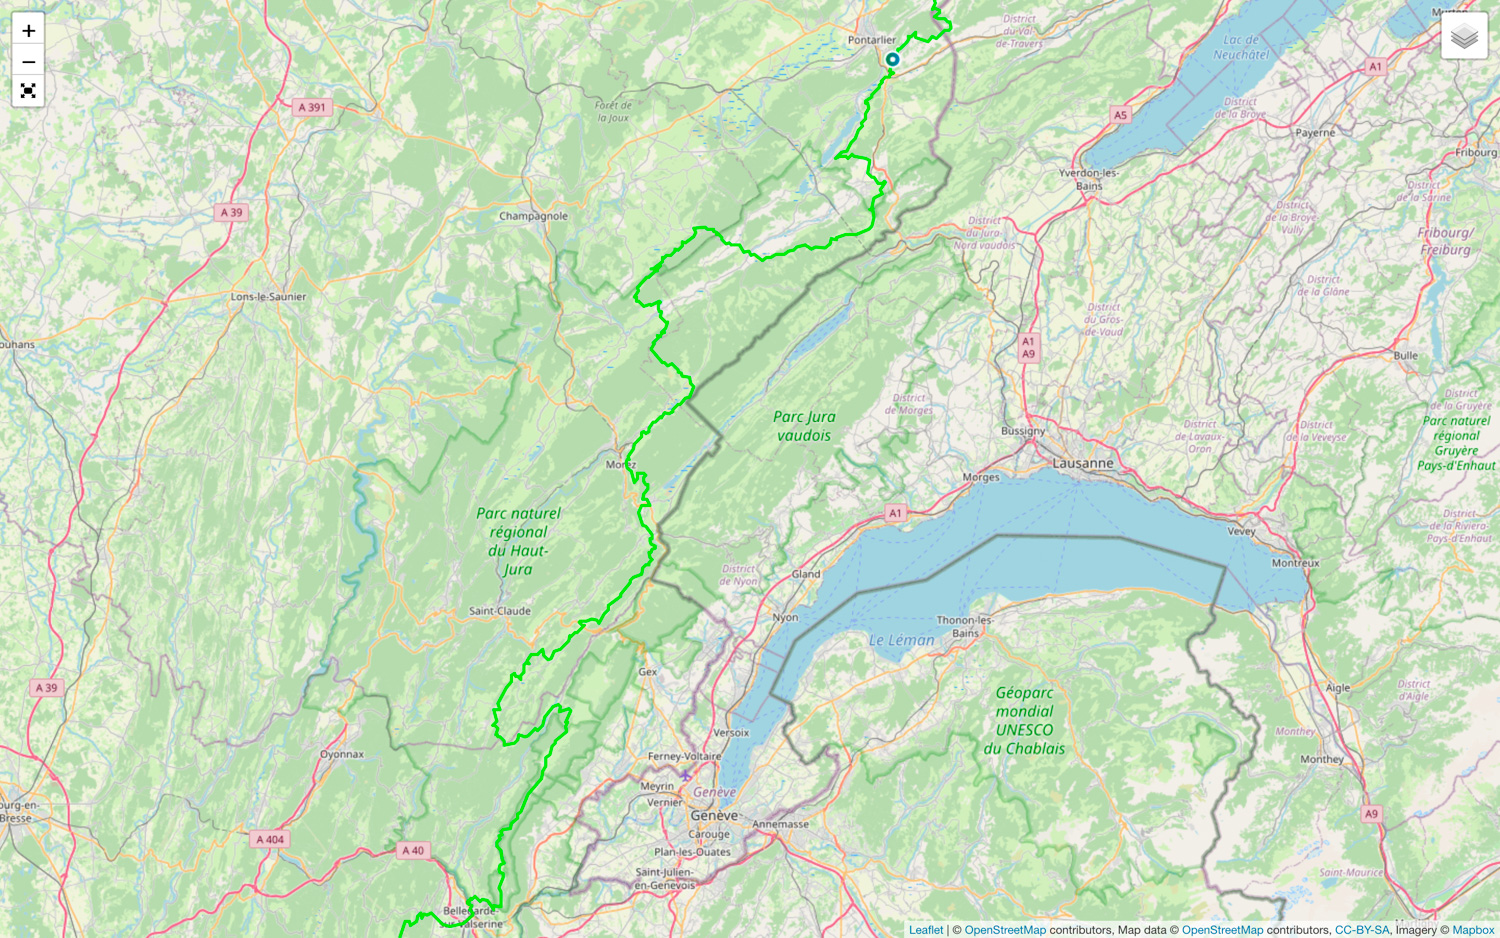 The map of the GR509 from Pontarlier to Bellegarde-sur-Valserine. Source : https://www.gtj.asso.fr/en/routes-and-activites/gtj-hiking-route/